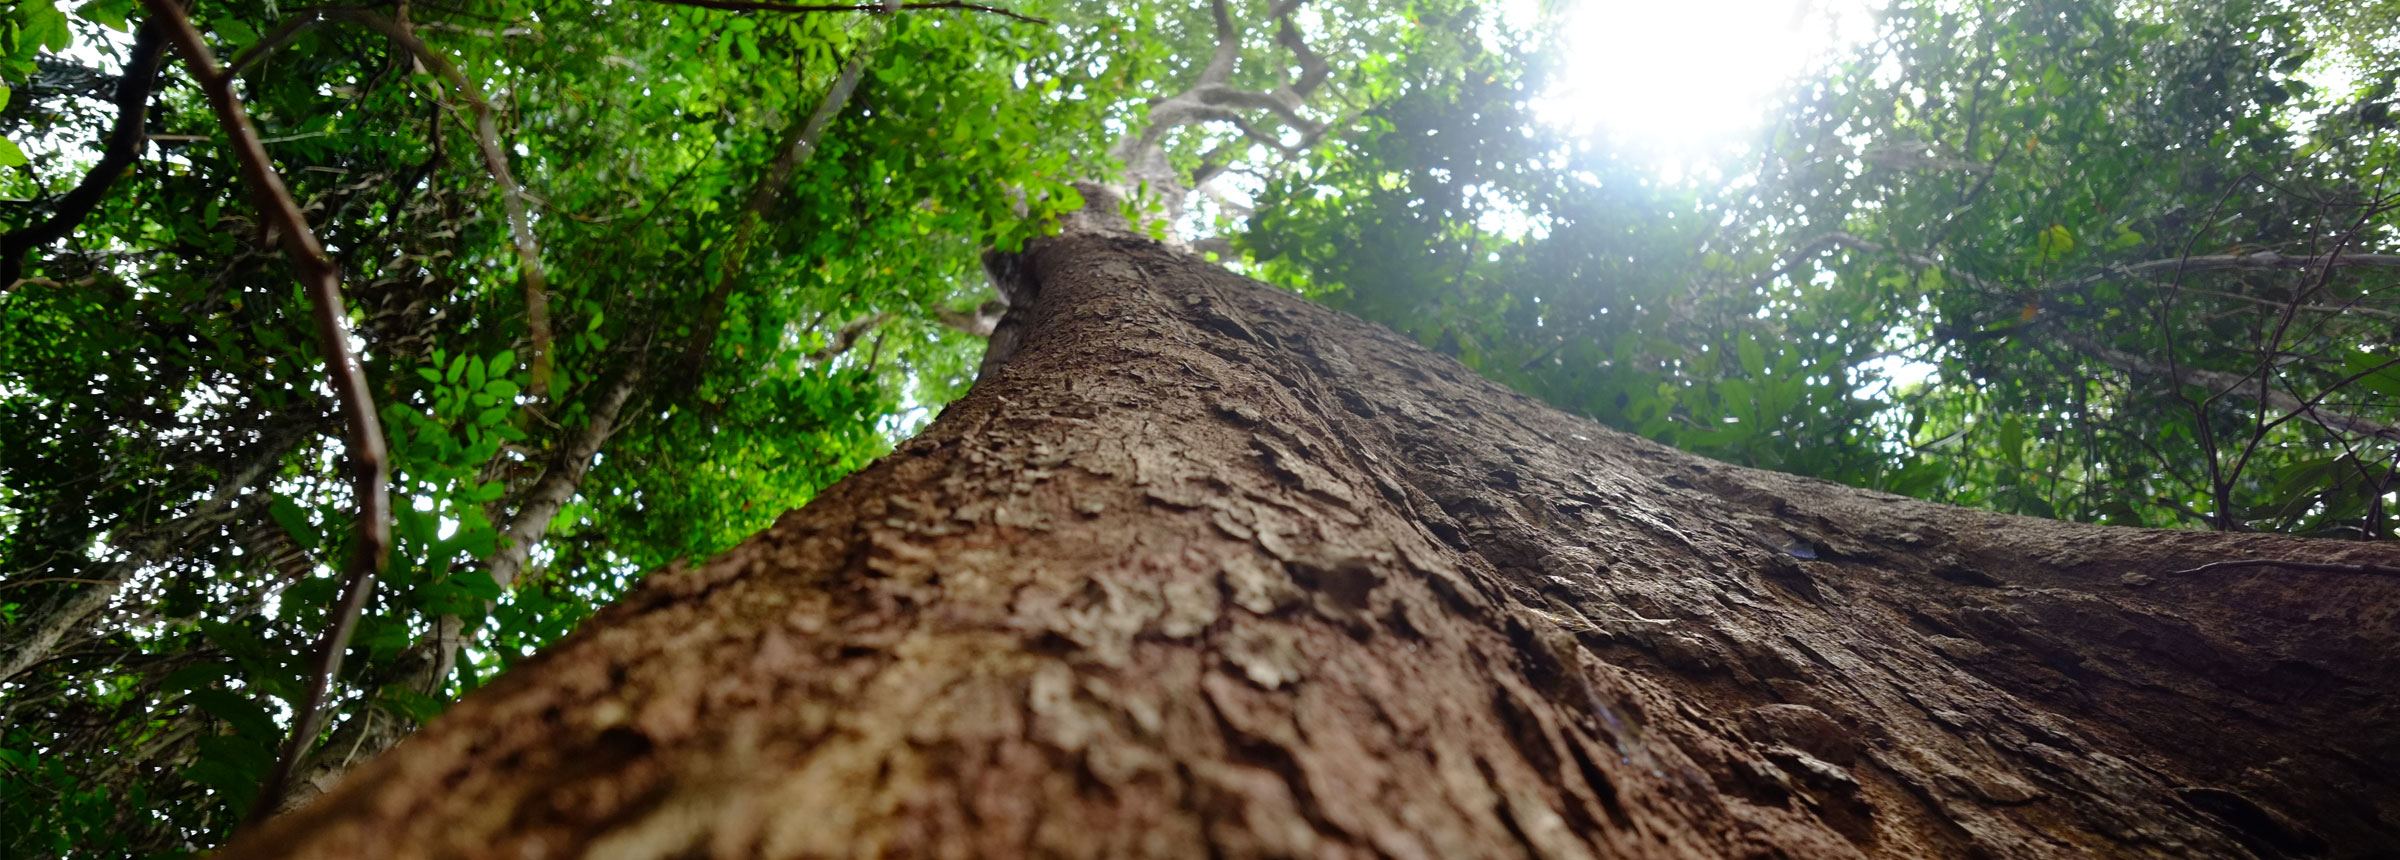 Forest tree view from bottom